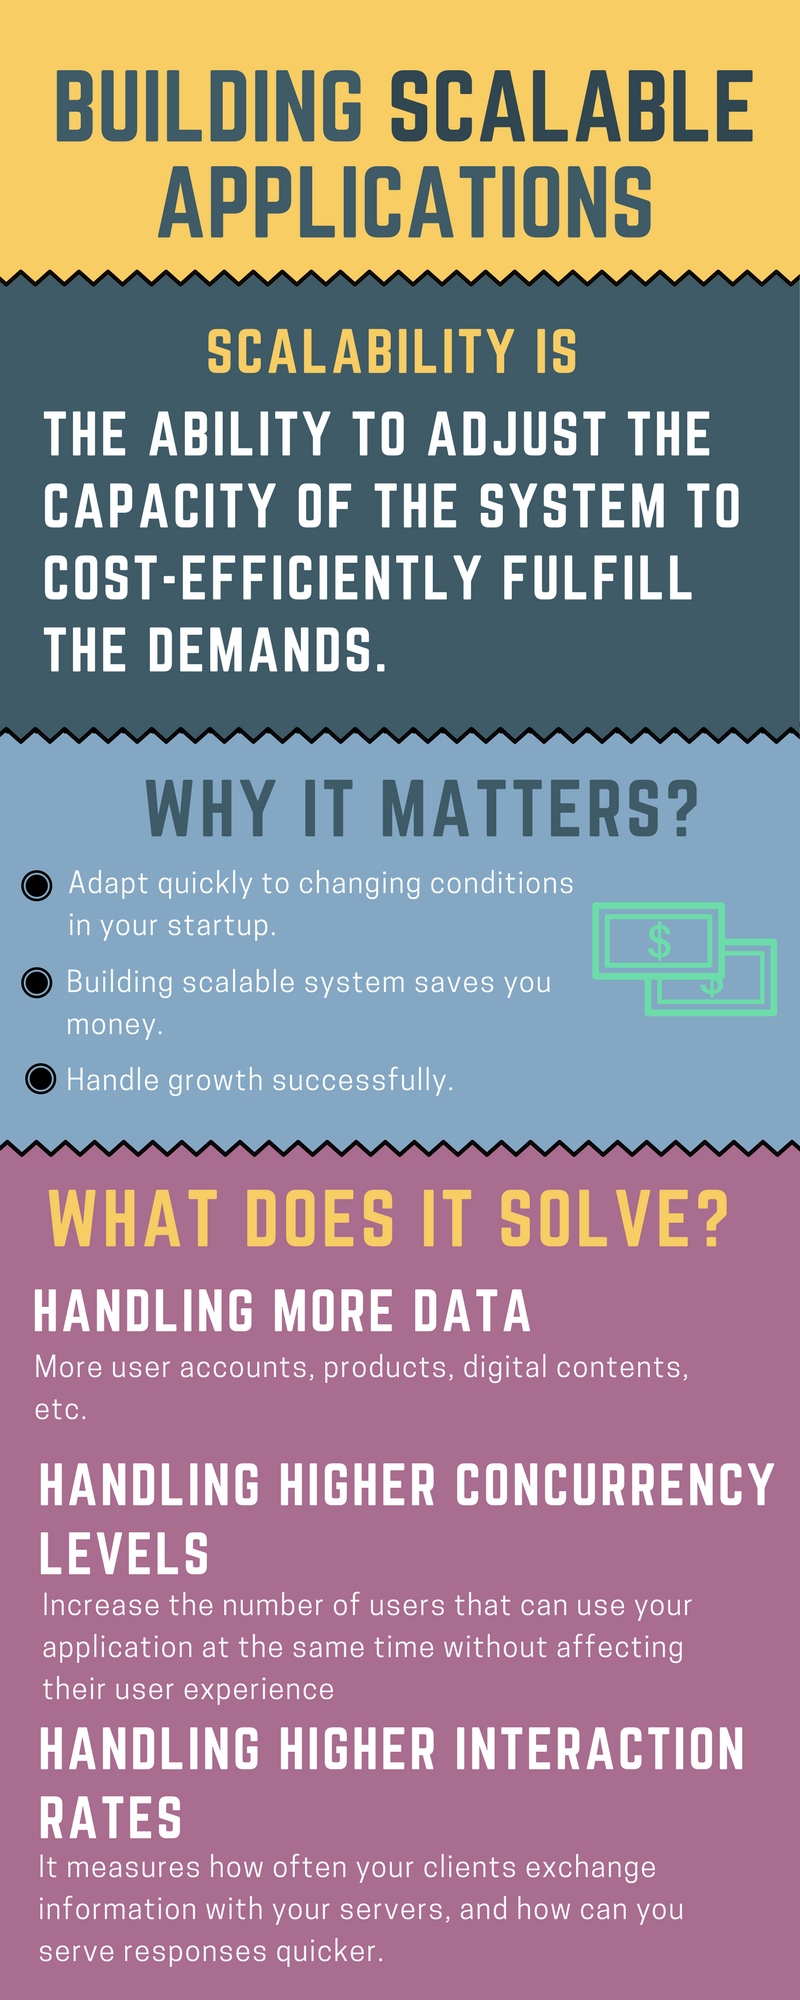 building-scalable-systems-applications-for-startups-infographic.png